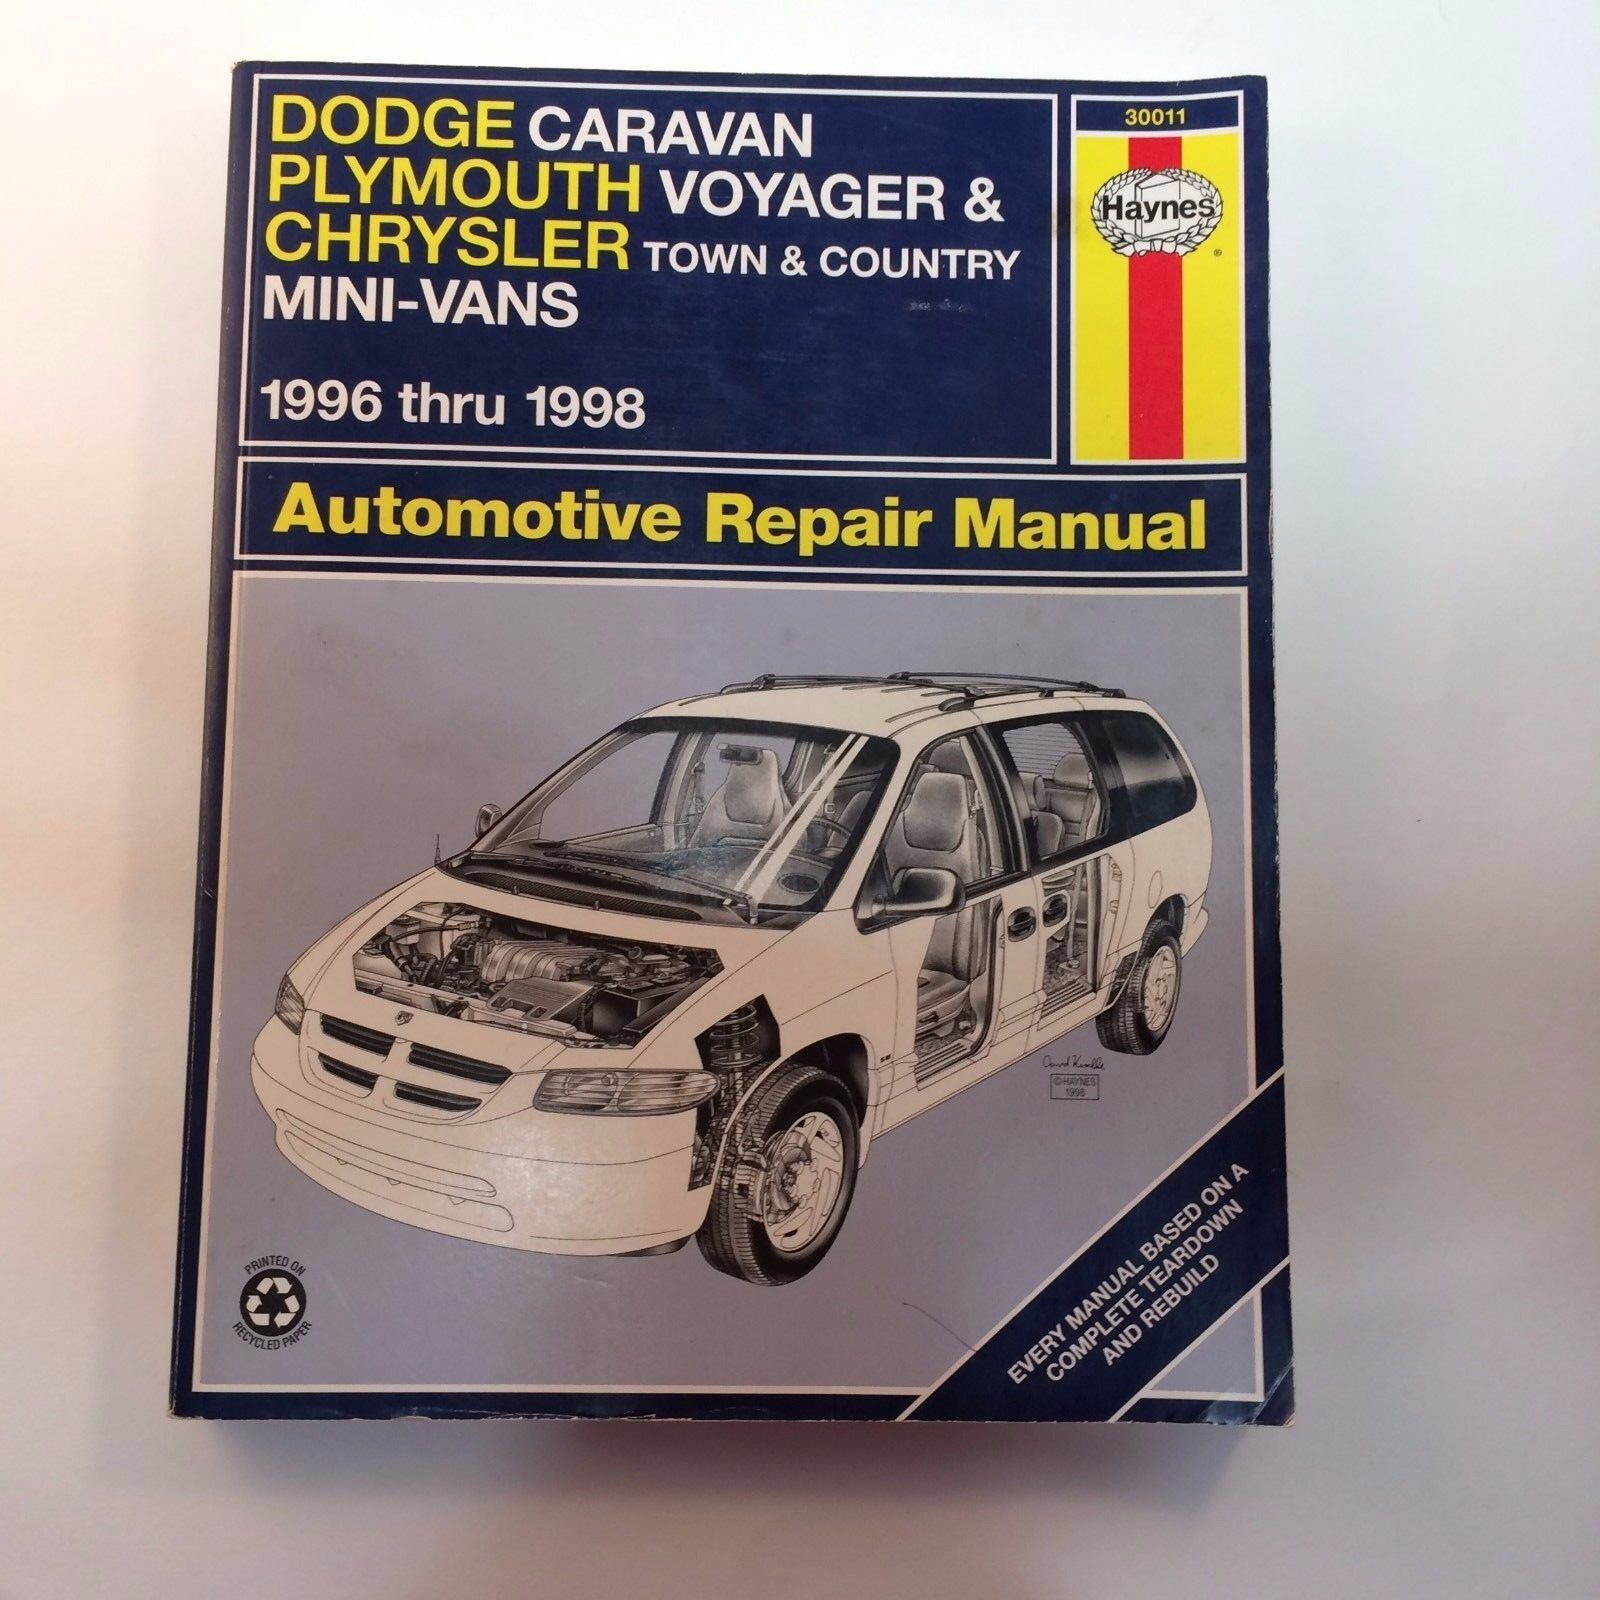 1995 Plymouth Grand Voyager Service Repair Manual Software. Like easy step  save it now. Curse Mummy Tomb Turtleback S curse mummy tomb turtleback s  curse ...